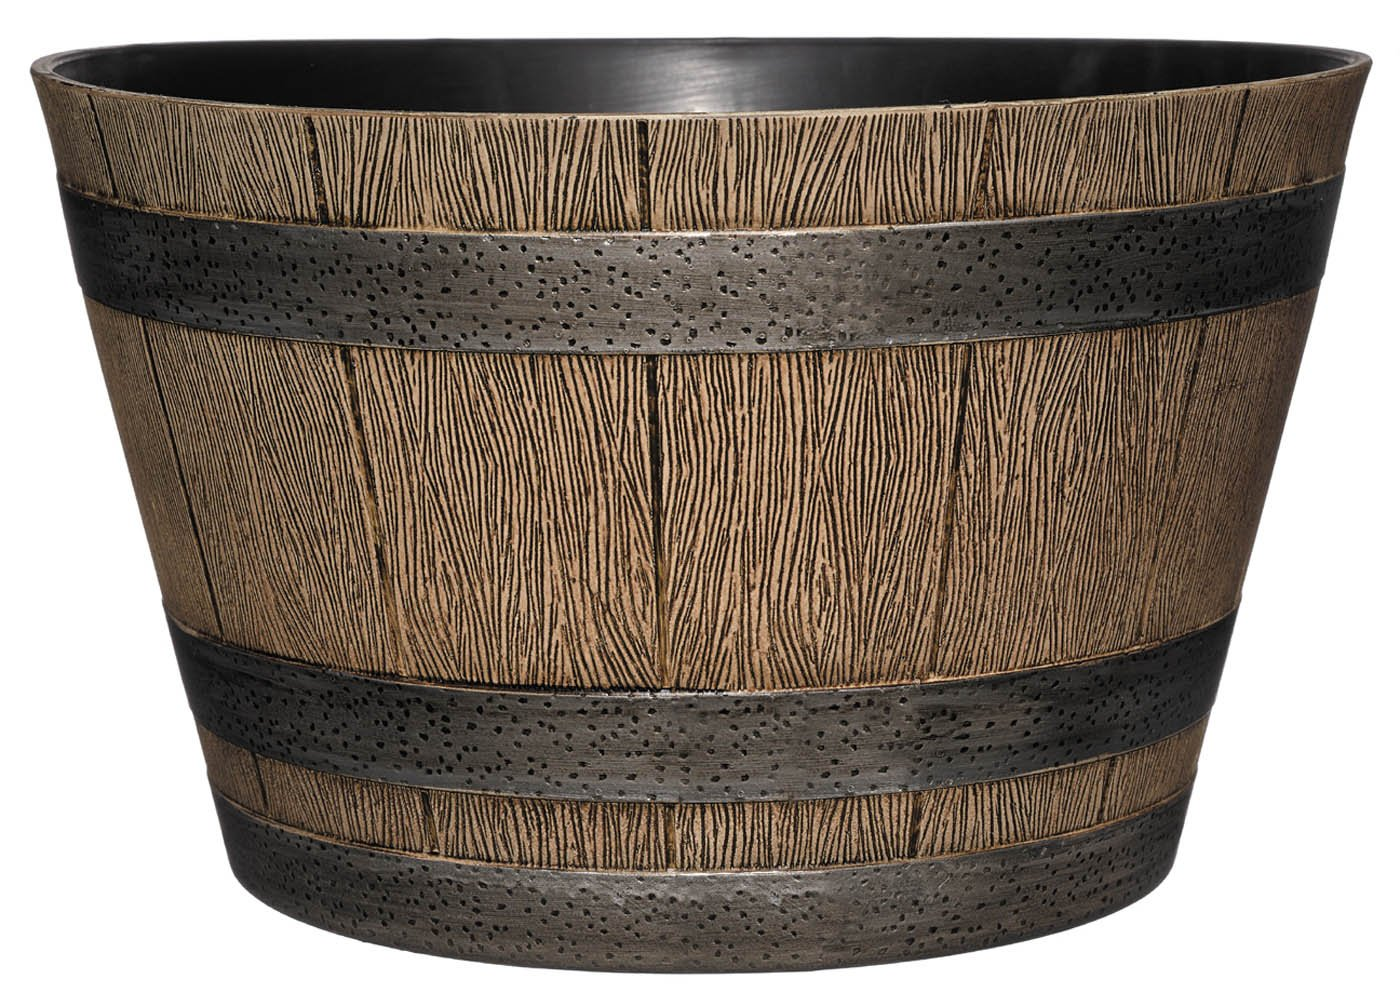 Classic Home and Garden HD1-1027 DisOak Whiskey Barrel, 20.5'', Distressed Oak by Classic Home and Garden